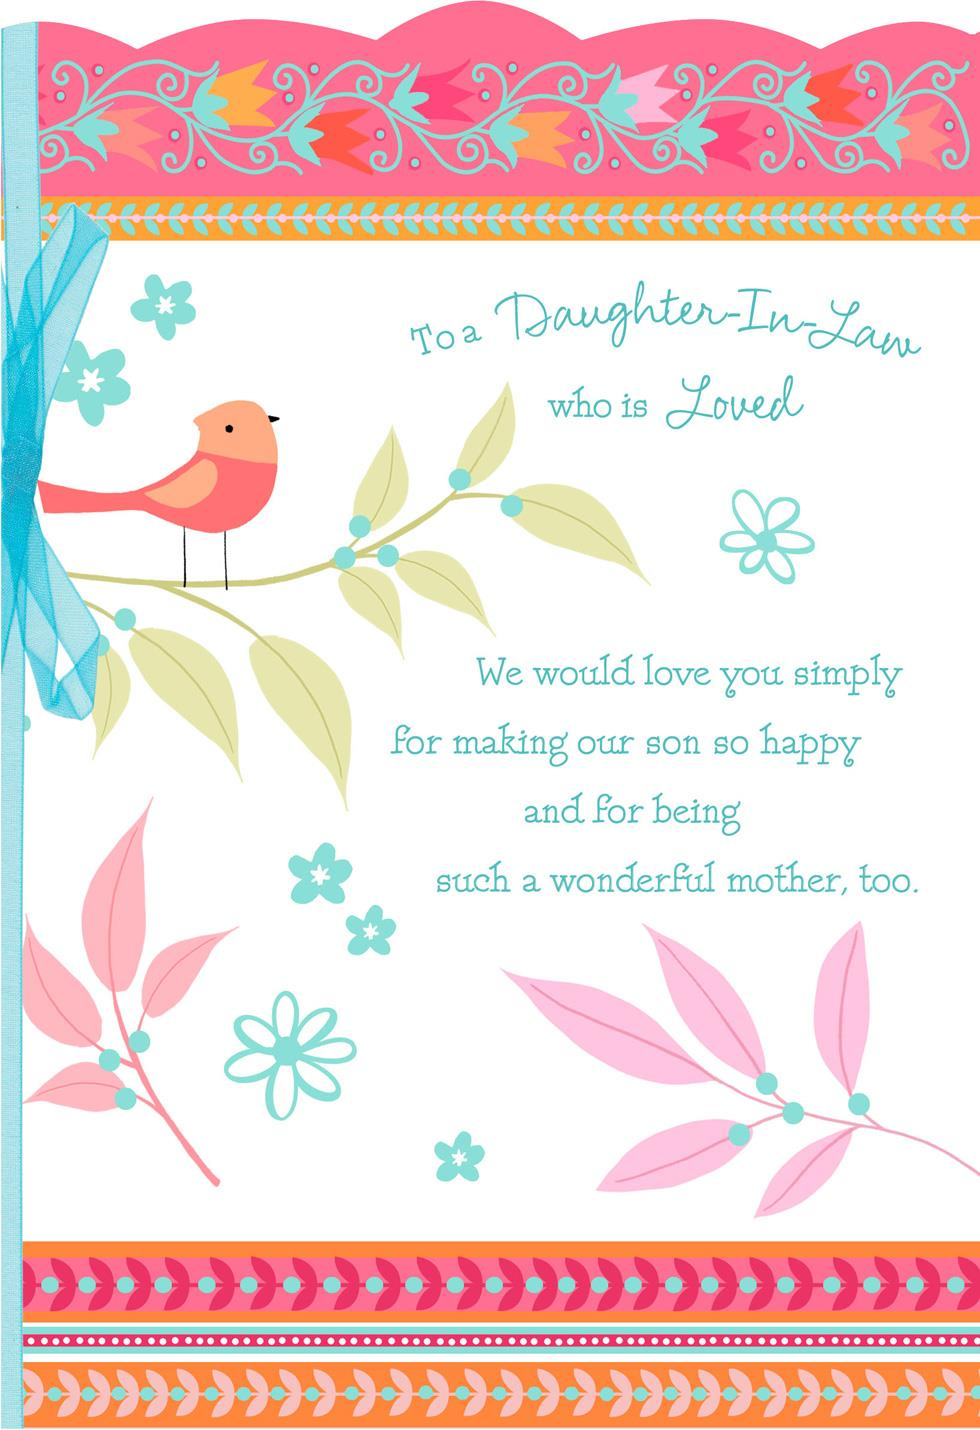 Mothers day cards hallmark songbird mothers day card for daughter in law kristyandbryce Choice Image